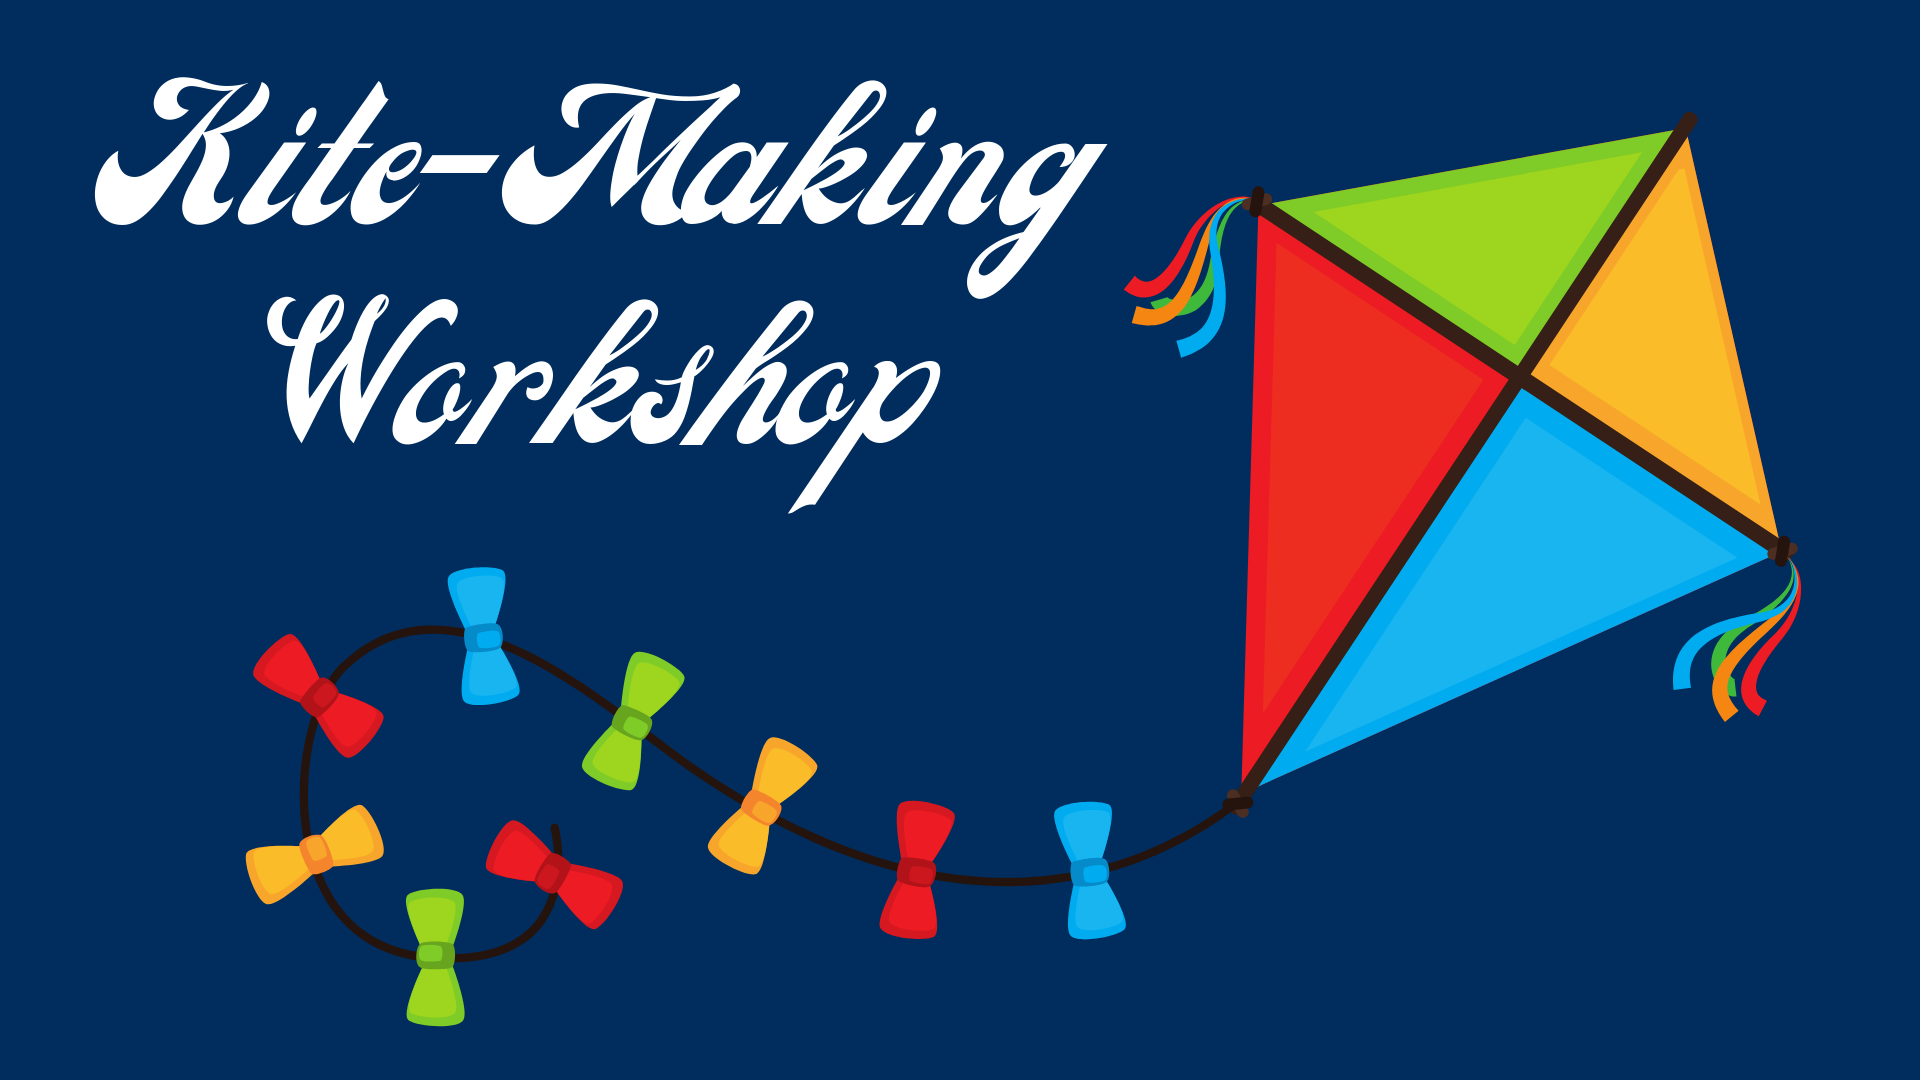 Kite-Making Workshop